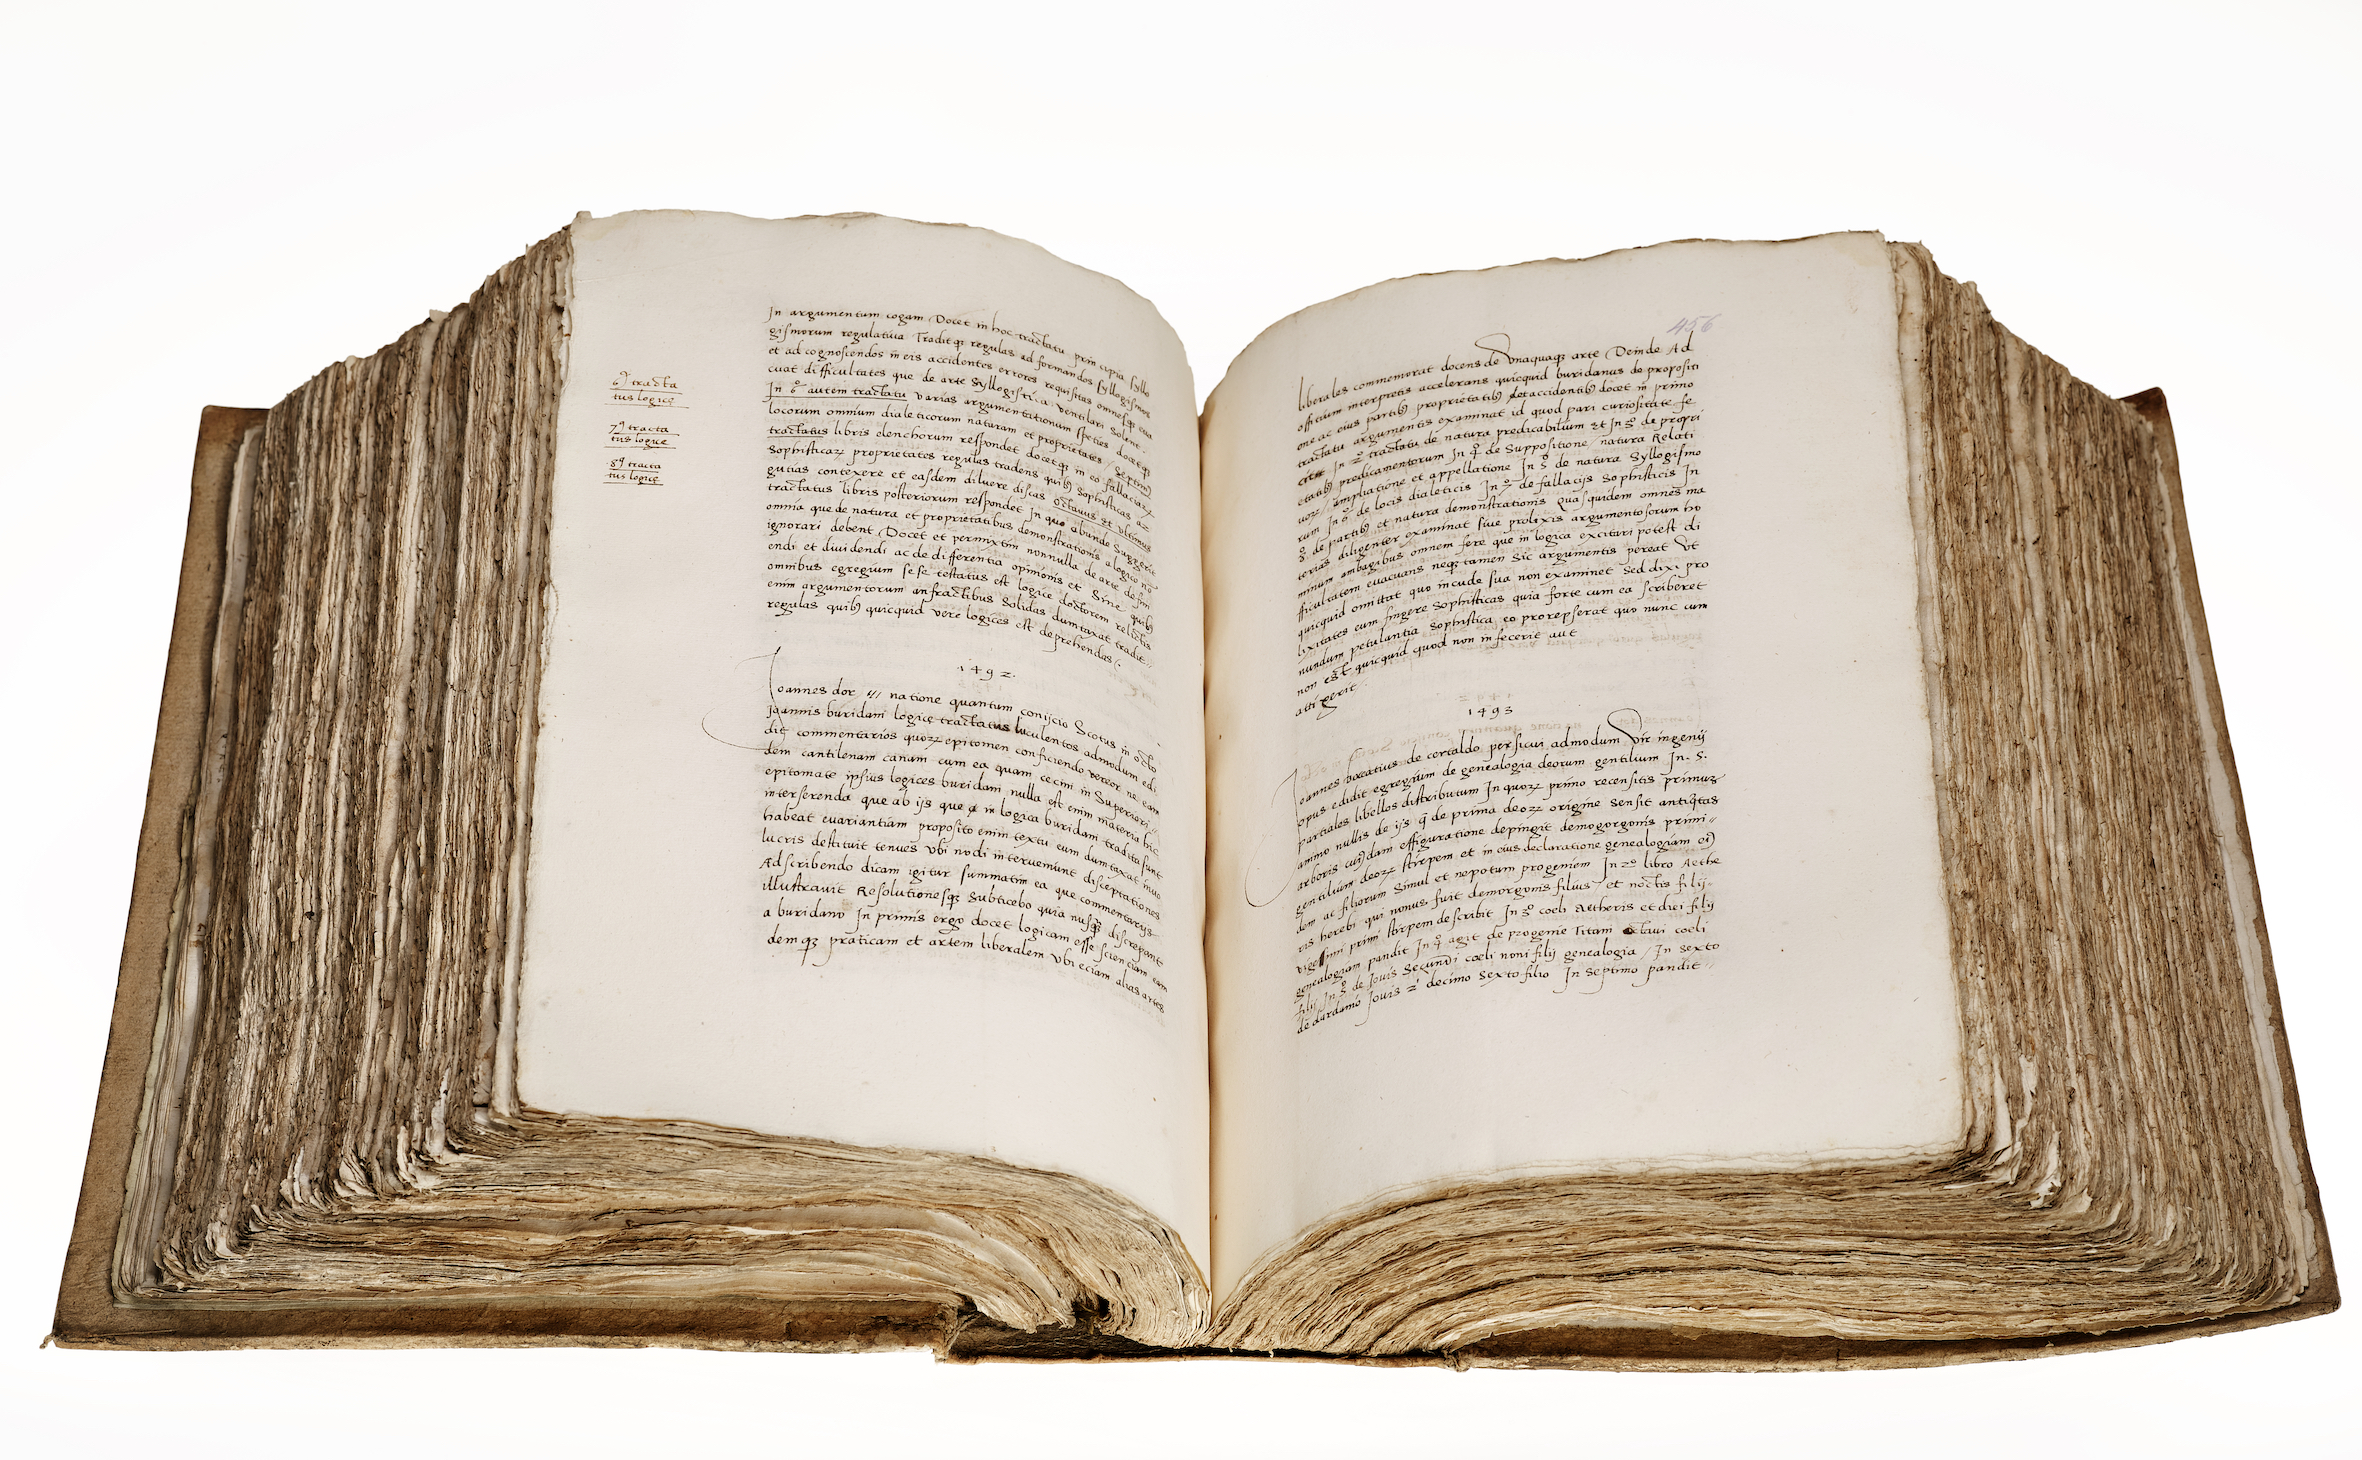 Read more about: Hernando Colón's Book of Books: AM 377 fol.